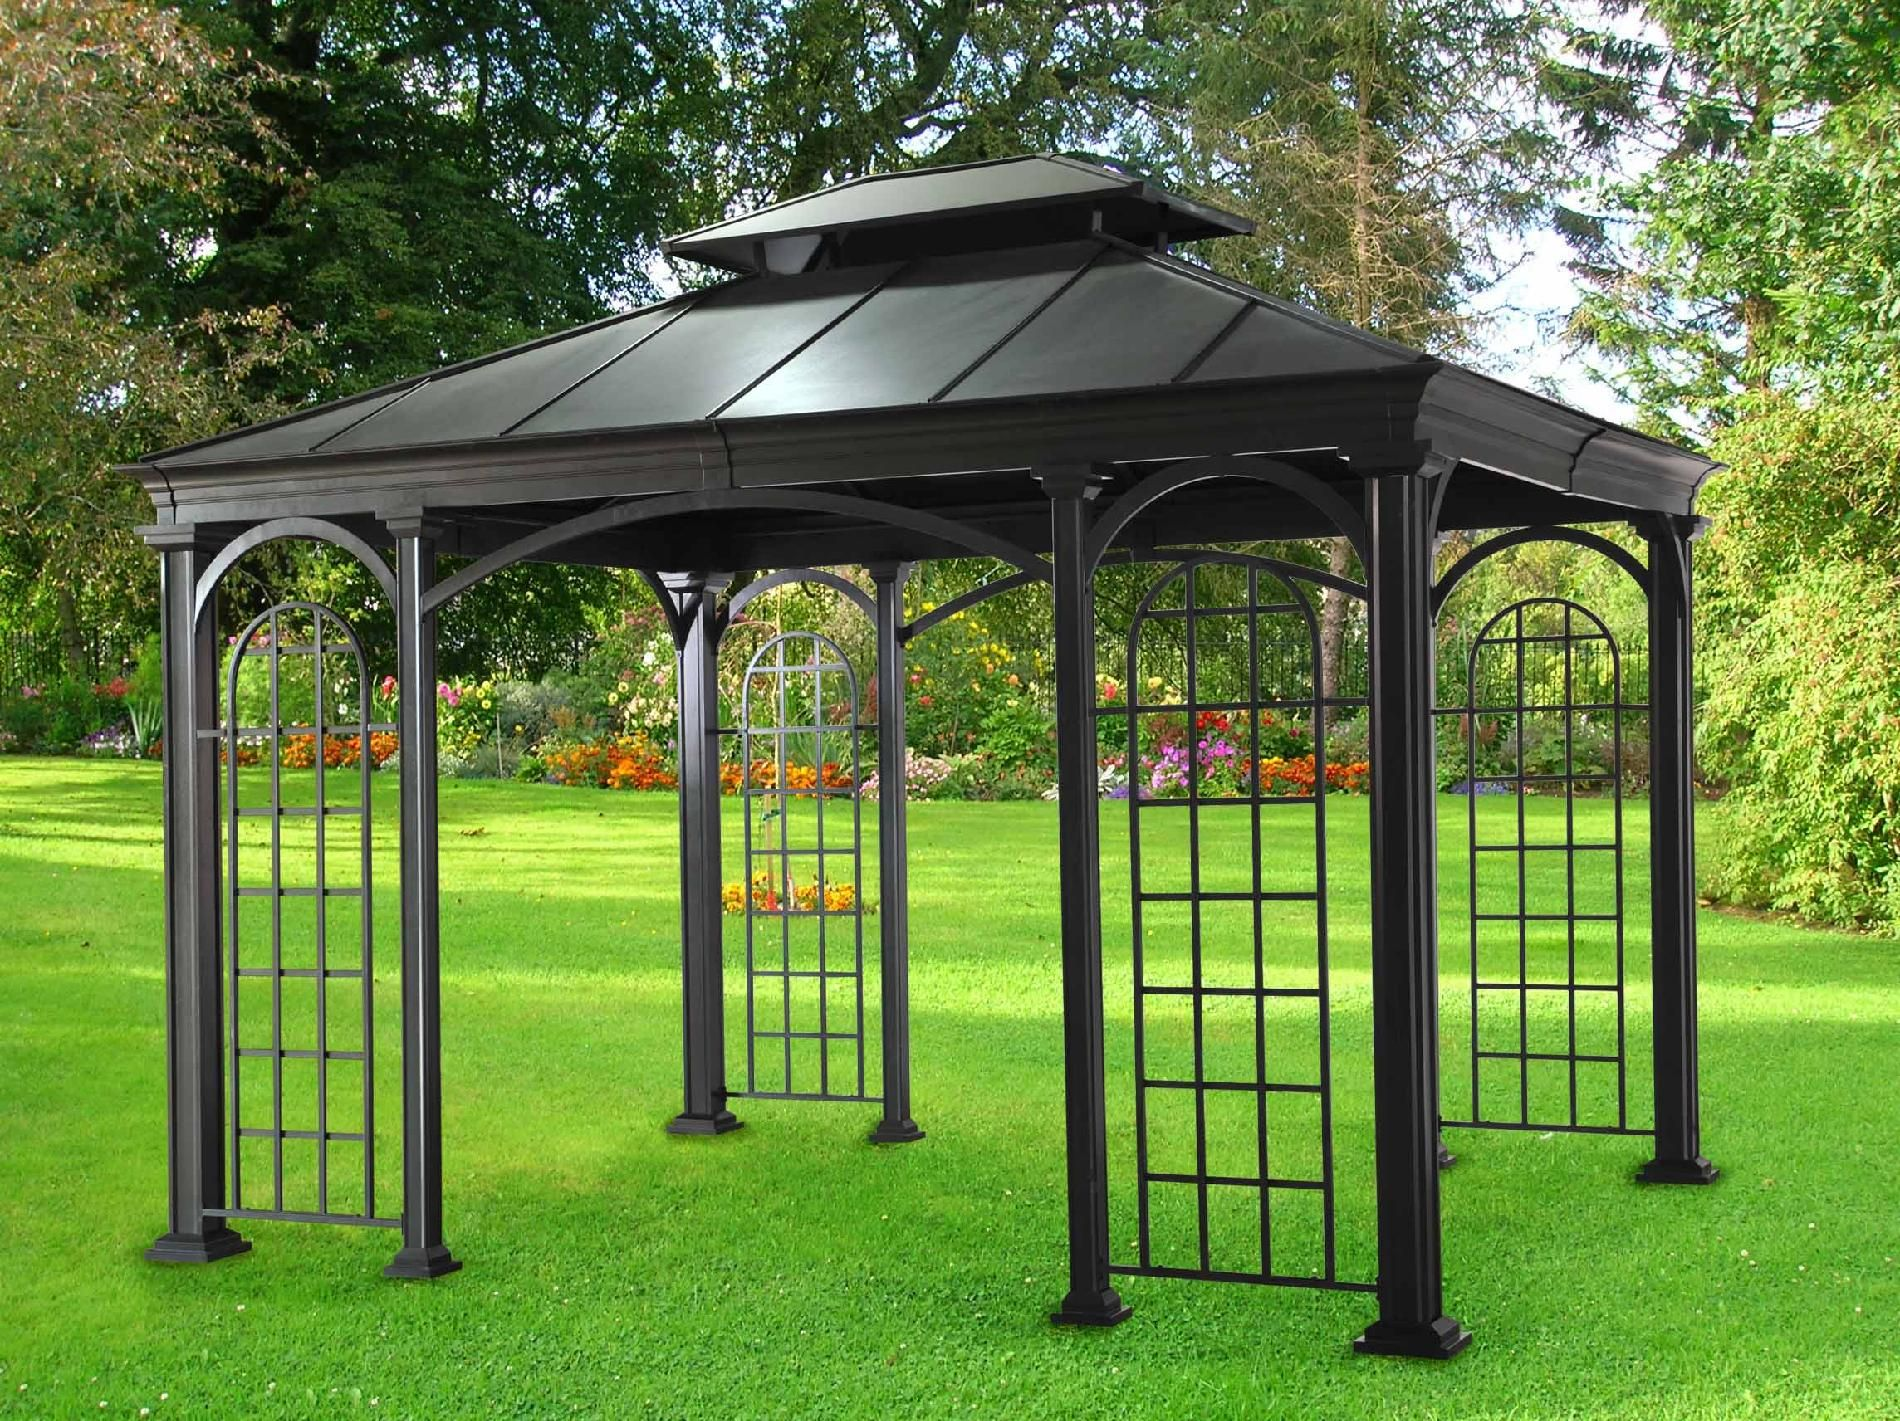 Outdoor gazebo designs | Metal Gazebo Kits | Pinterest